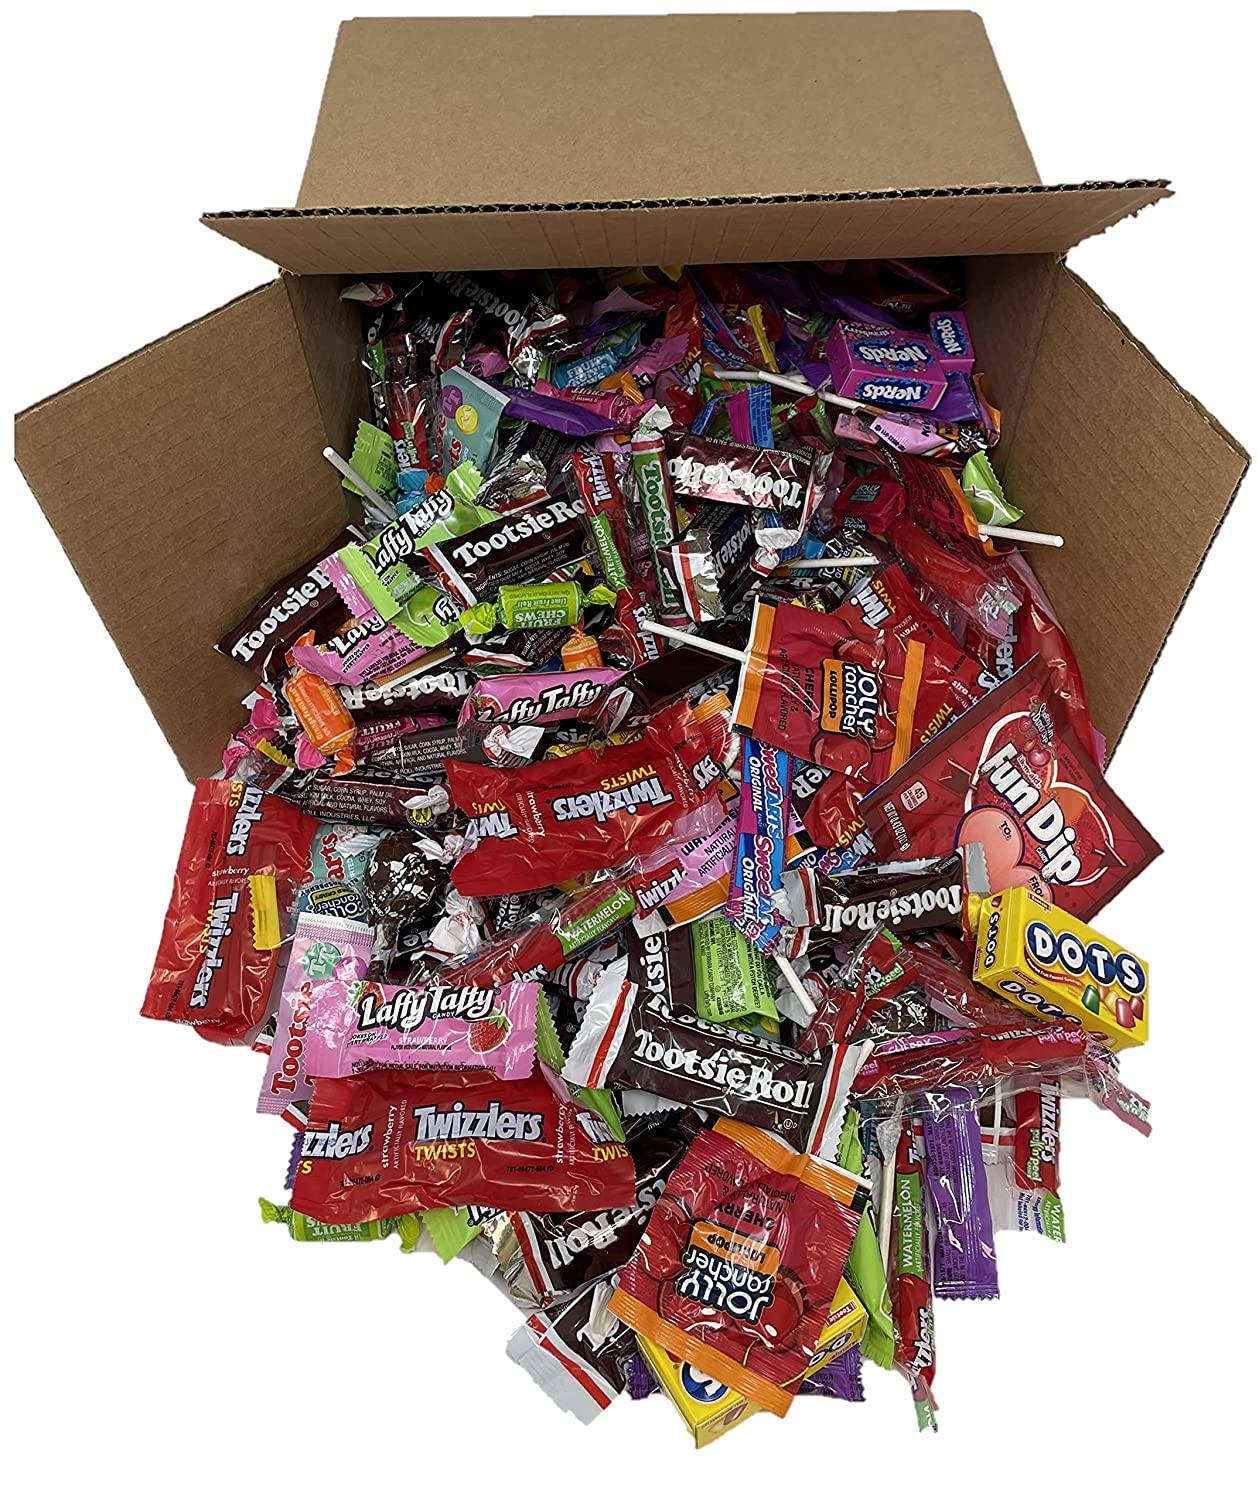 Assorted Bulk Candy, Individually Wrapped: 5 LB Box Variety Pack with Tootsie Rolls, Tootsie Pops, Assorted Laffy Taffy's, Dots, Twizzlers, Assorted Jolly Rancher & More! Great for Holiday and Party Treats